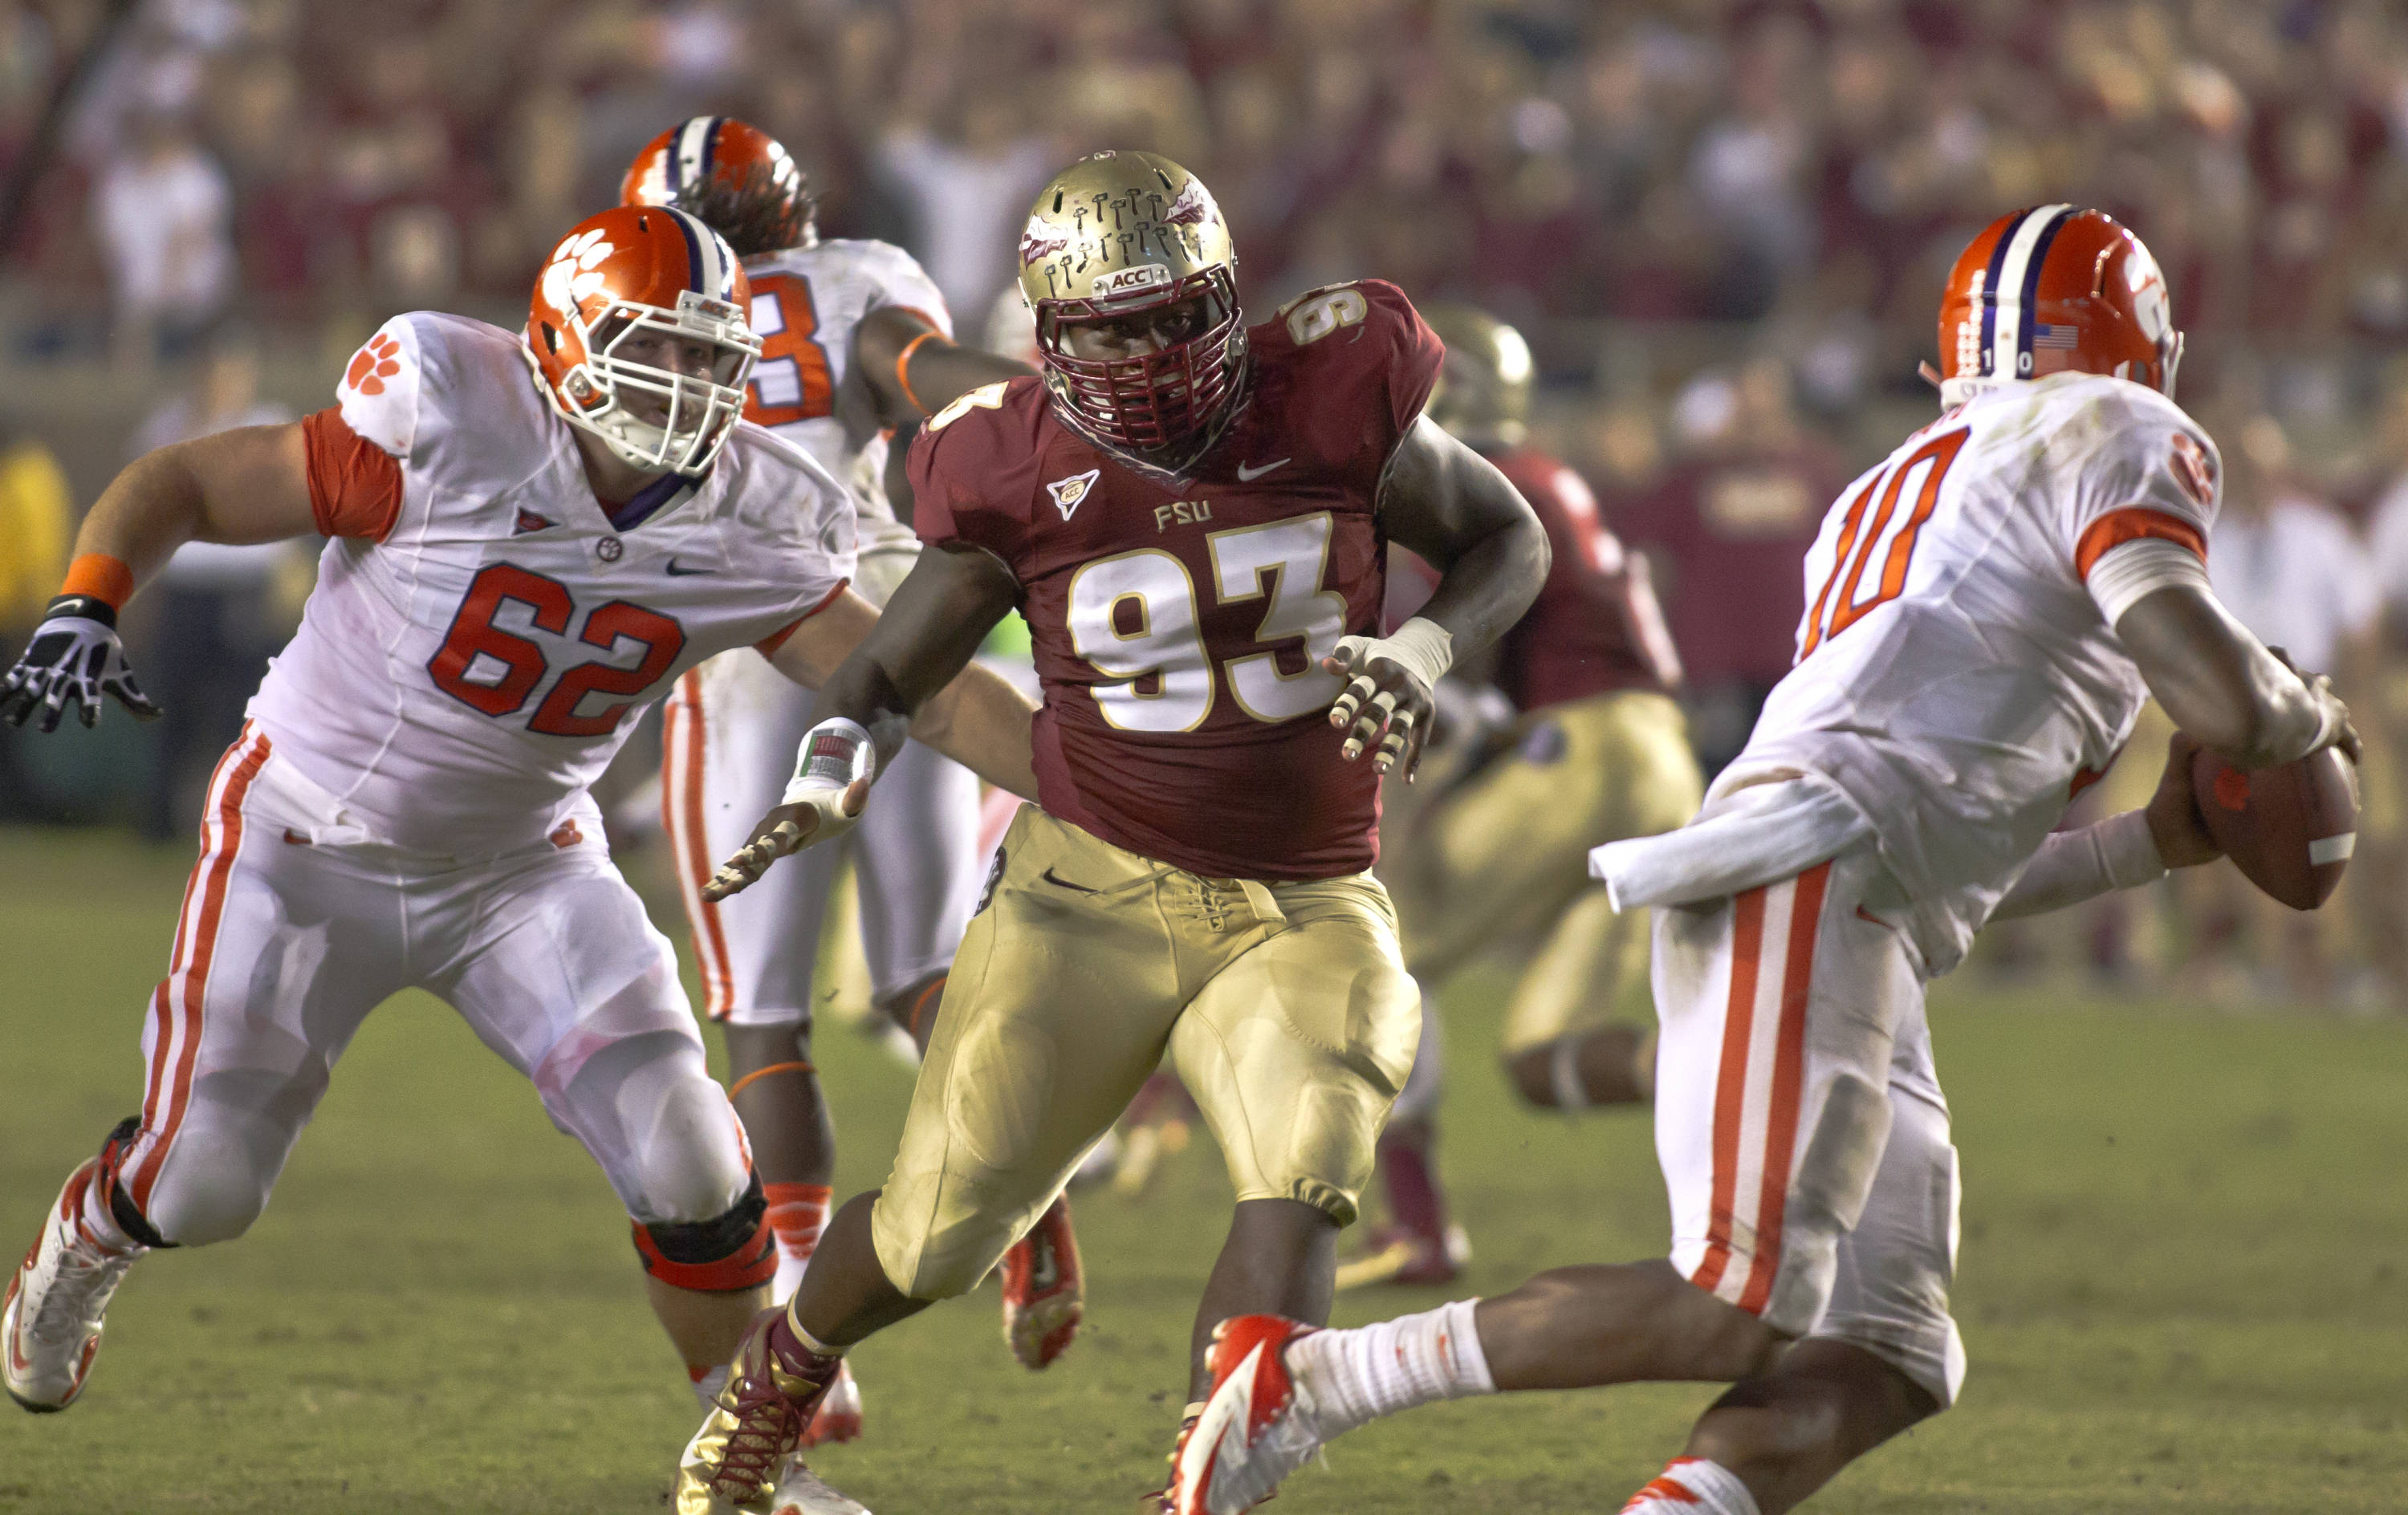 Everett Dawkins (93) chasing the quarterback out of the pocket, FSU vs Clemson, 9/22/12 (Photo by Steve Musco)